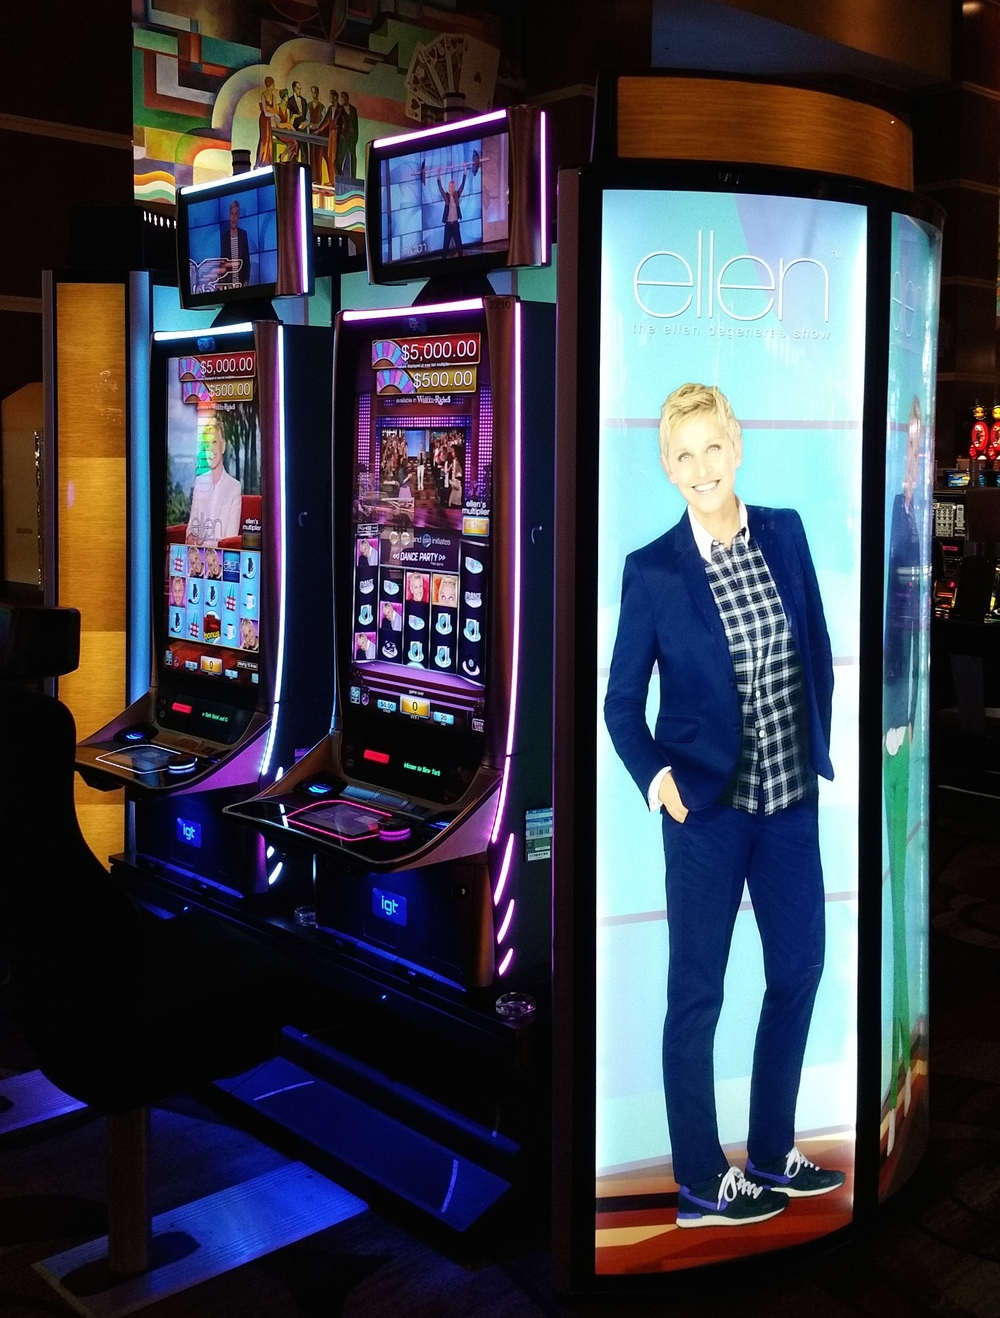 Ellen has her own slot machine...?